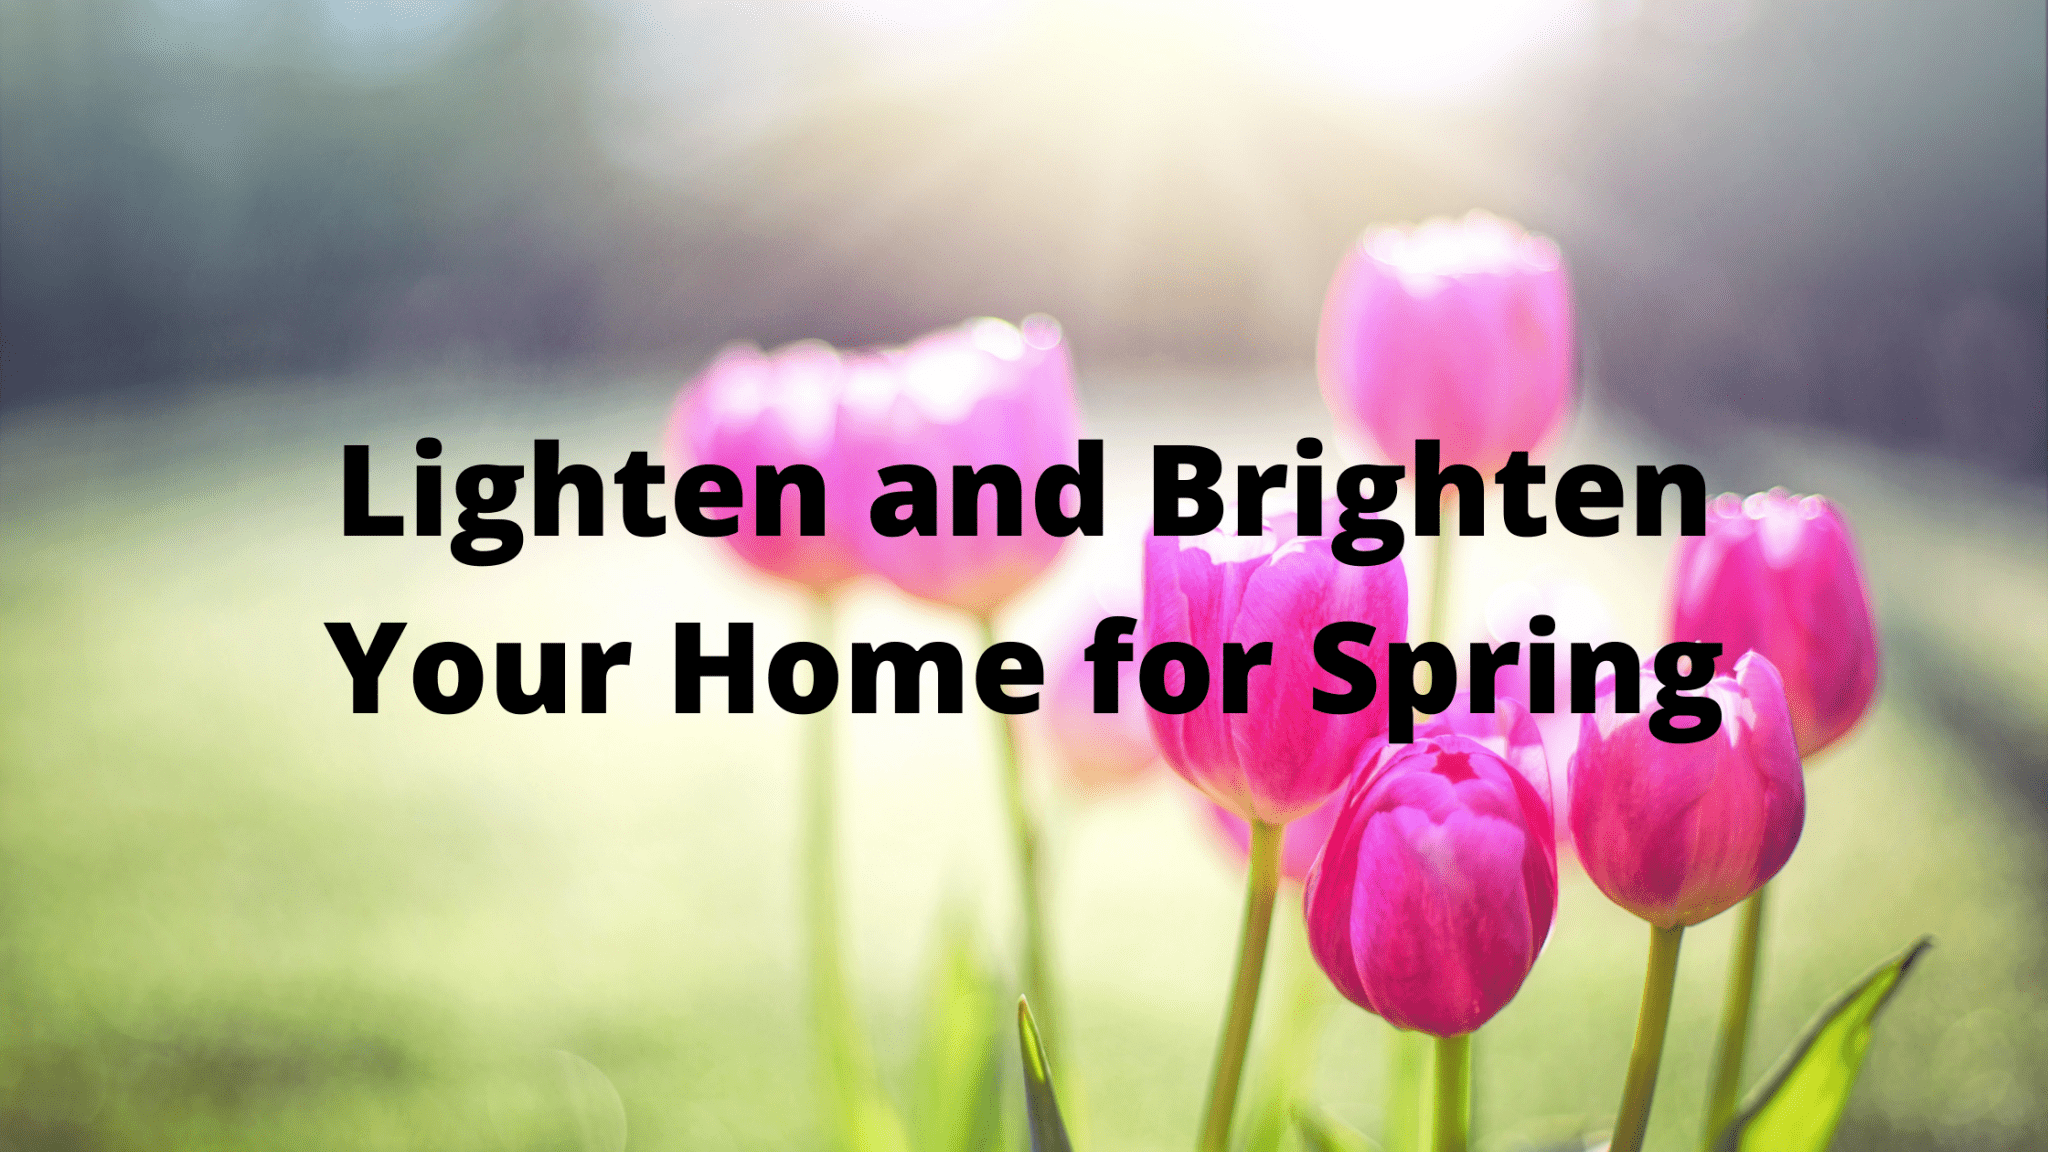 Lighten and Brighten Your Home for Spring